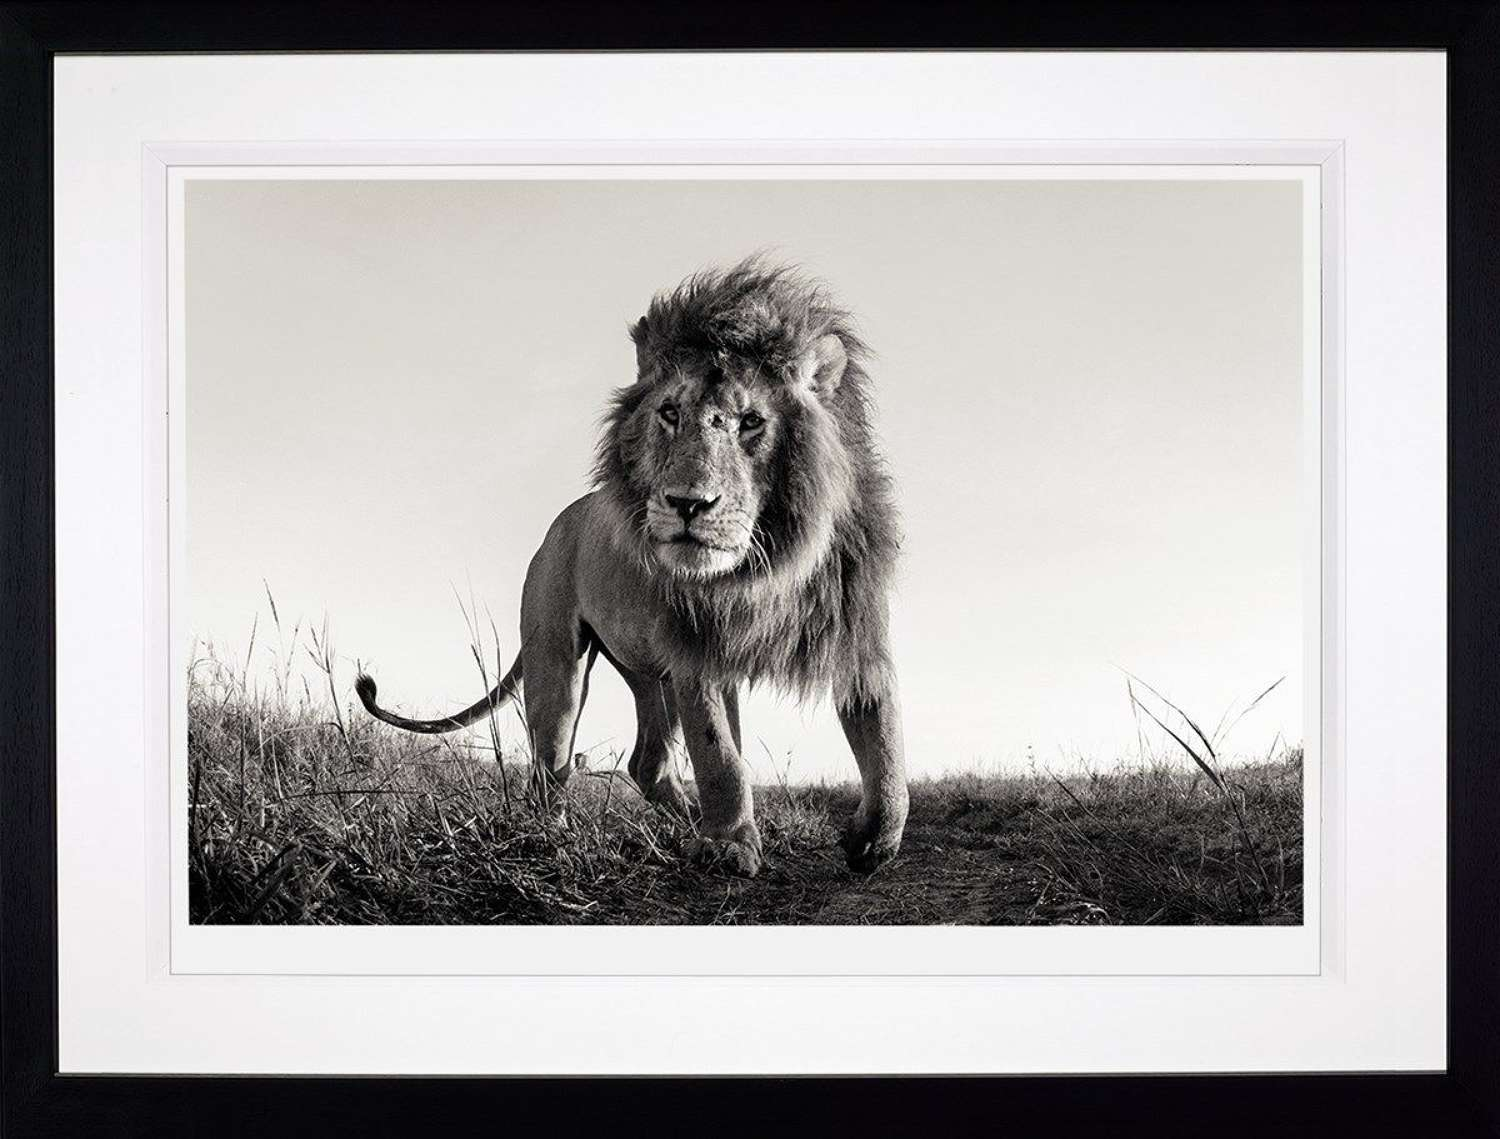 Hunter - (Deluxe) - Framed Photographic Art Print by Anup Shah